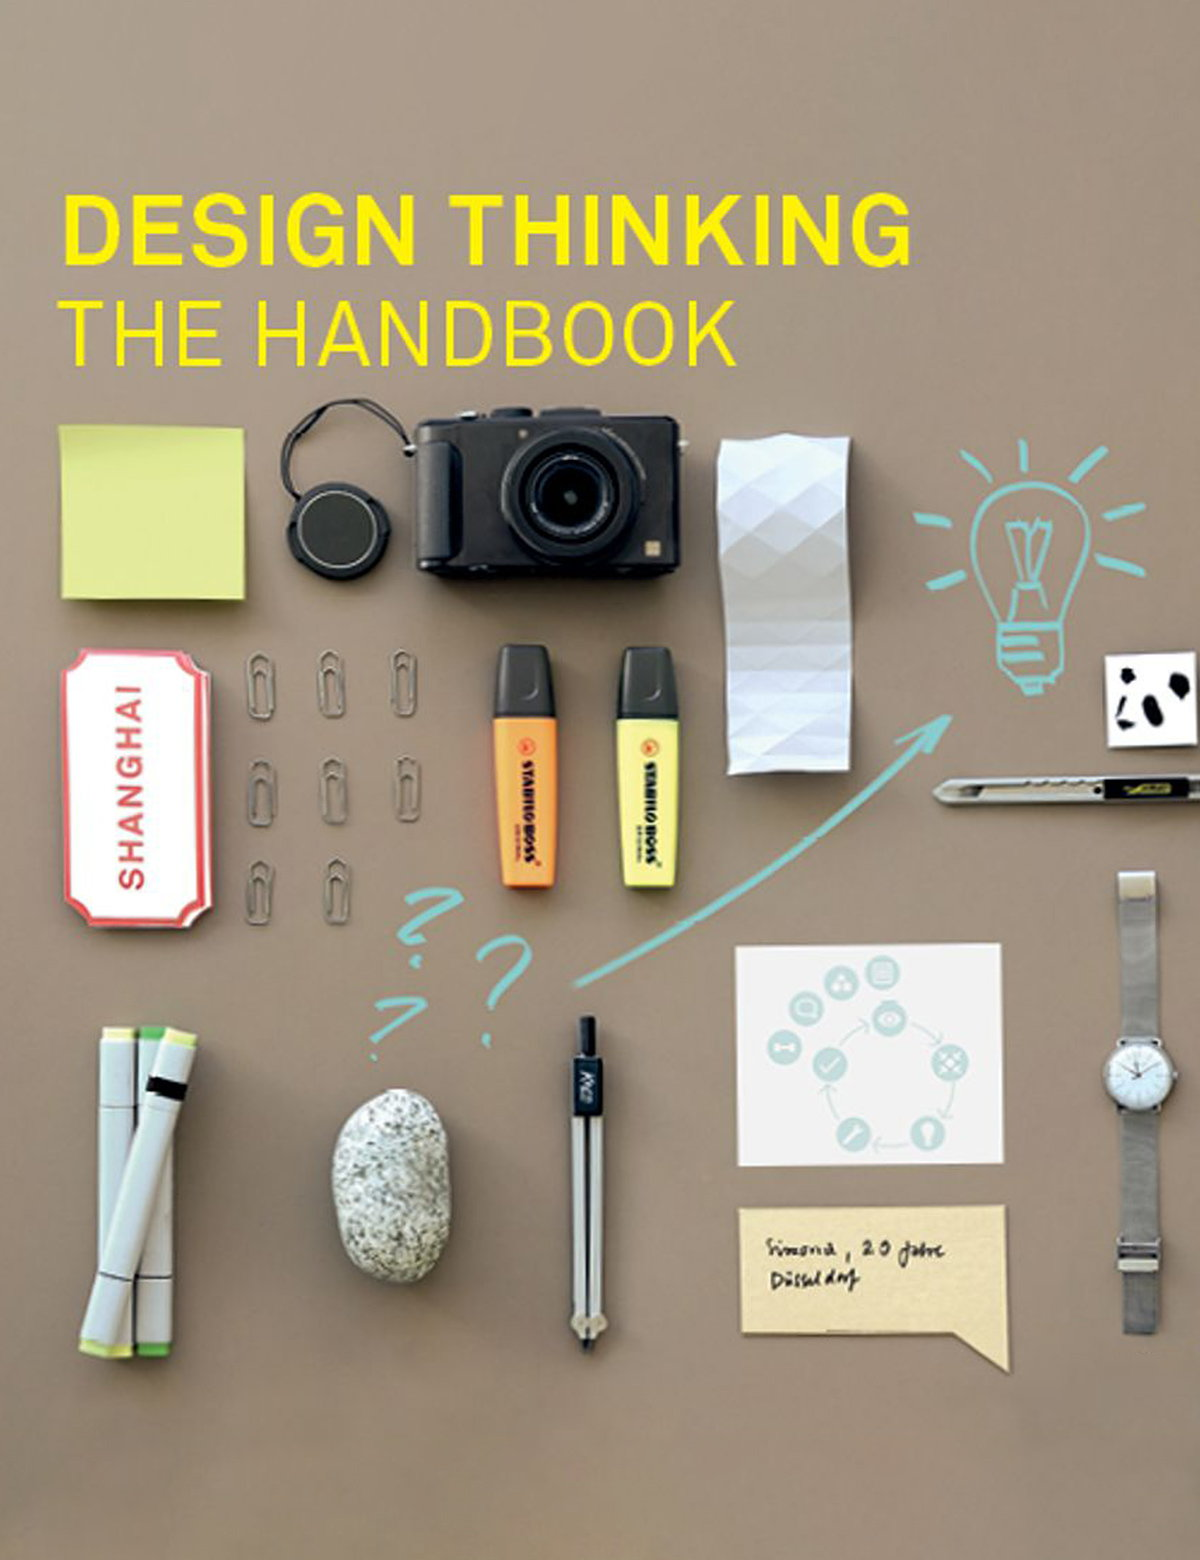 Design Thinking - The Handbook